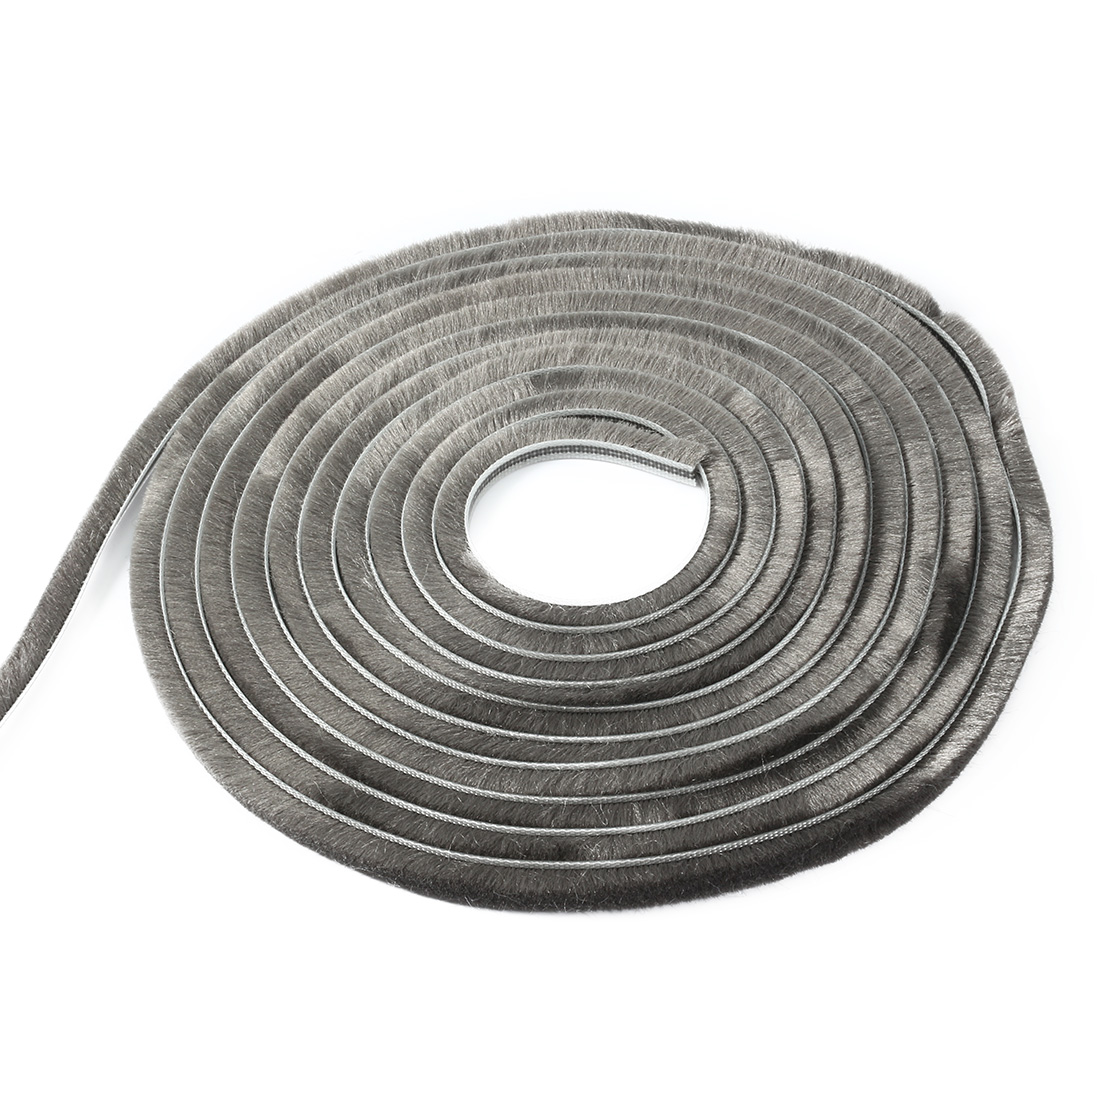 Window Weather Seal Strip 7/25 Inch Width x 5/16-Inch Thick x 19.7 Feet Long